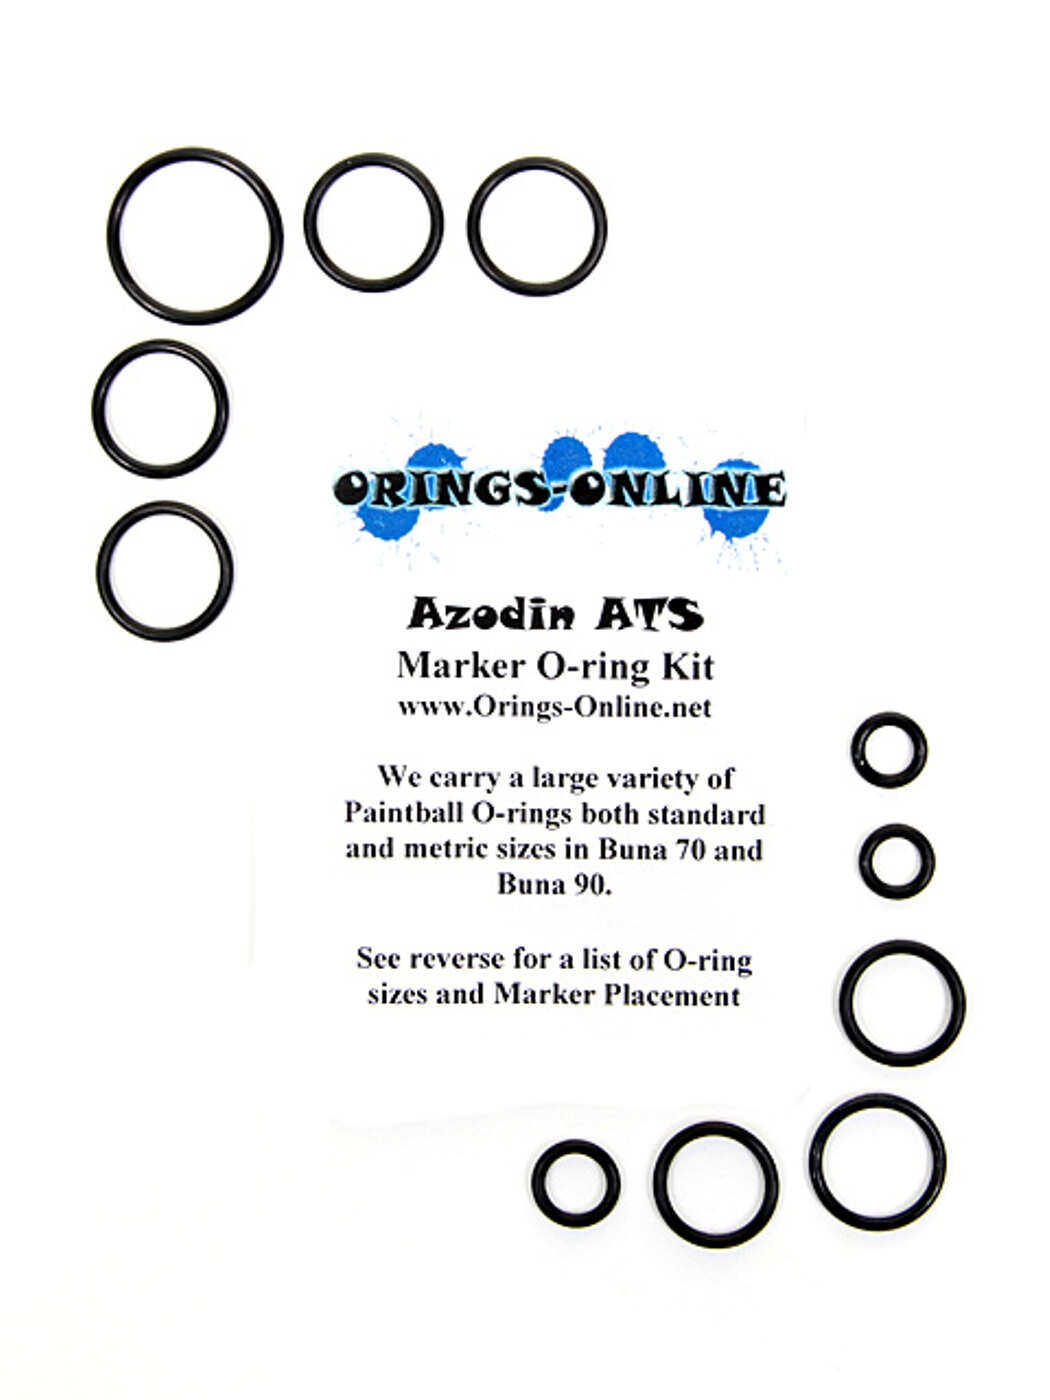 Azodin ATS Marker O-ring Kit